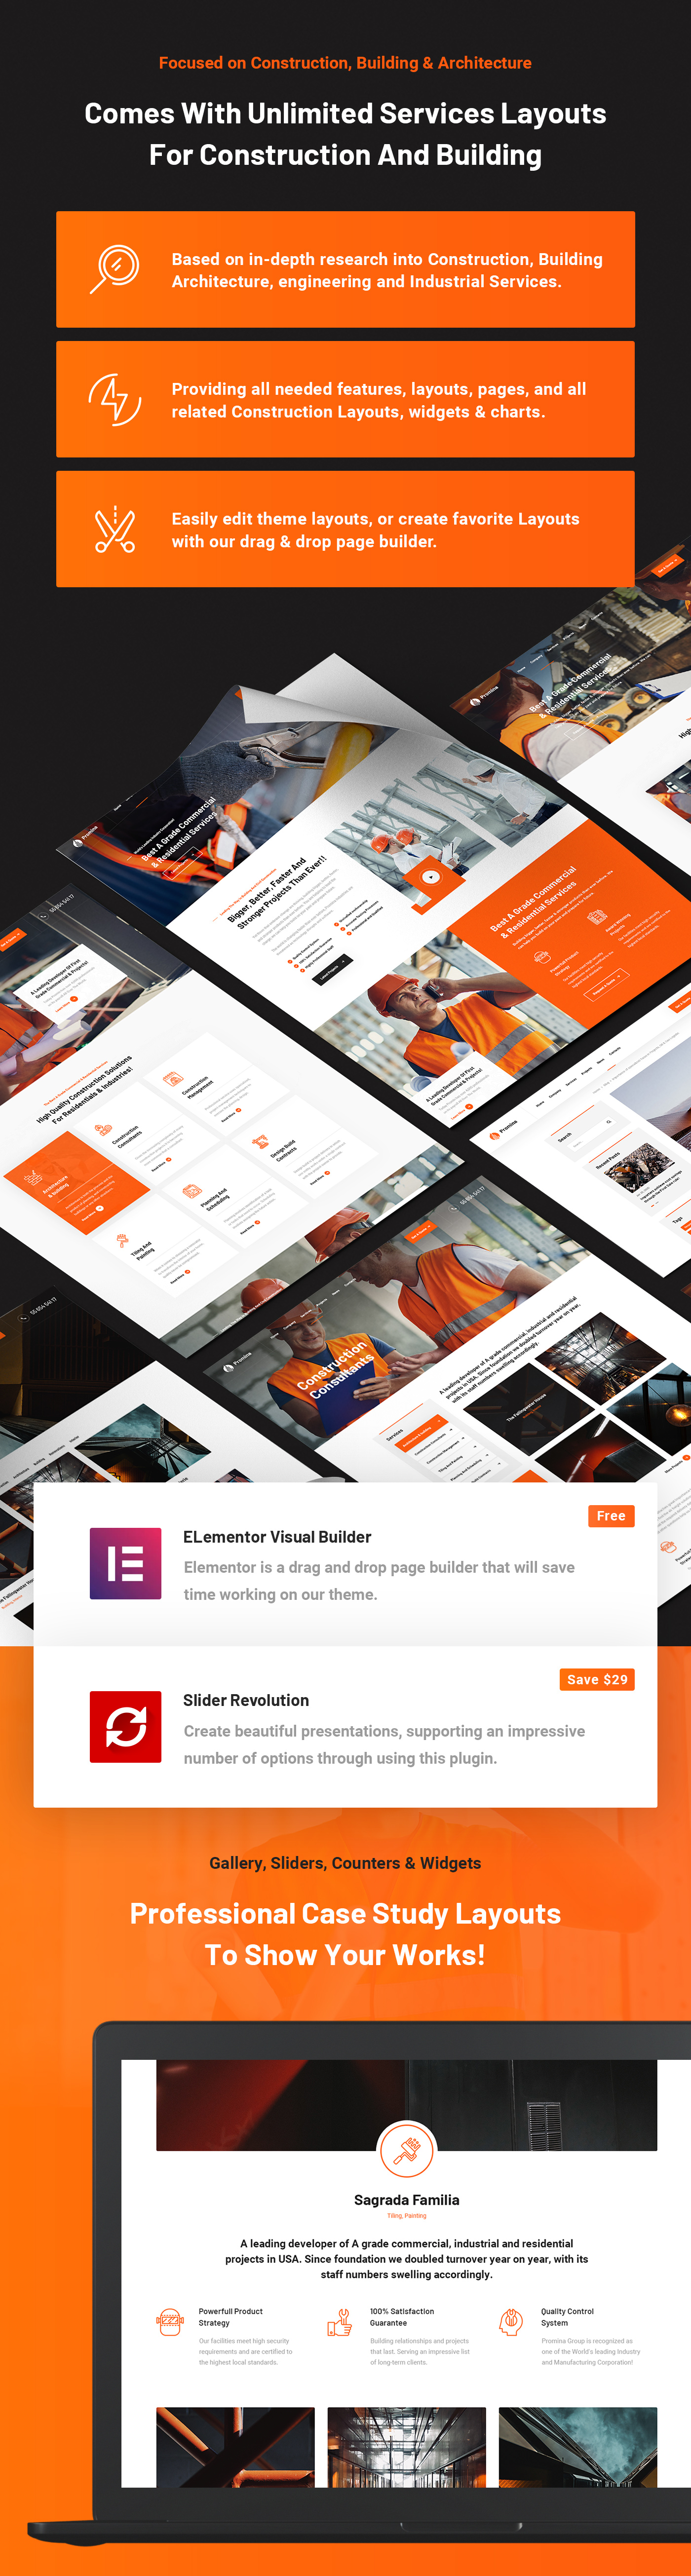 Promina - Construction Building & Architecture Business WordPress Theme - 7